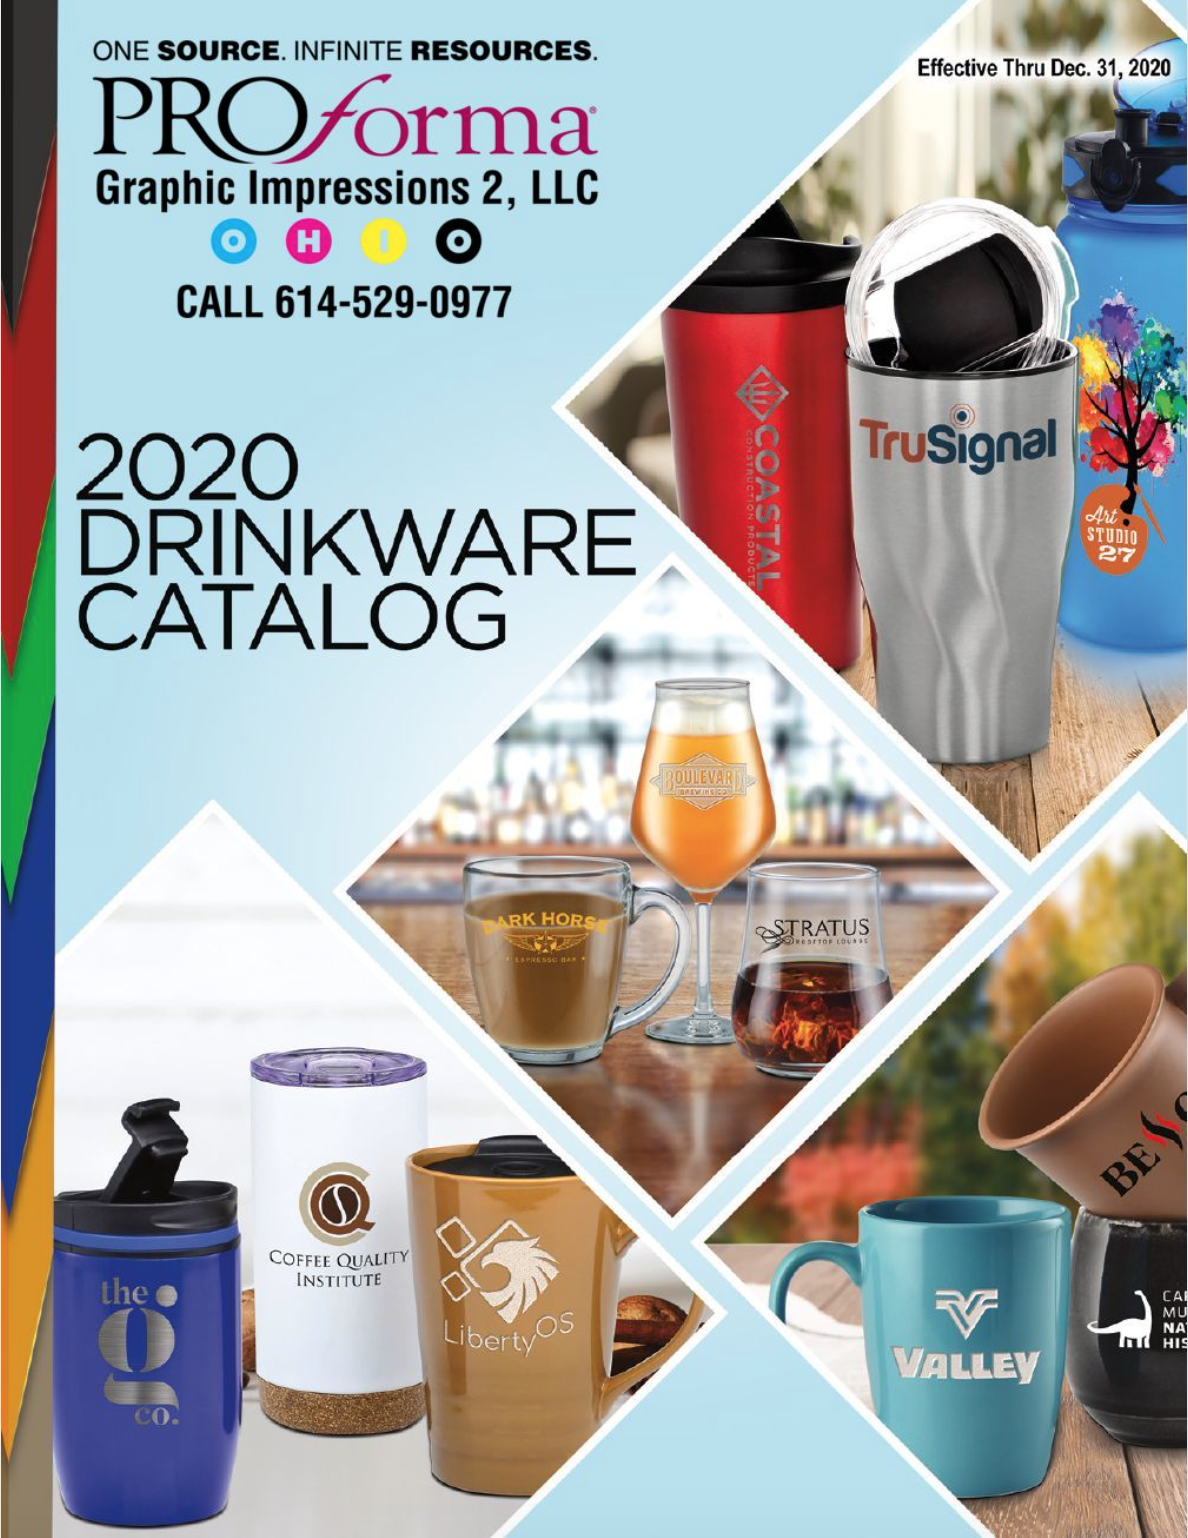 customizable promotional product drinkware in Ohio